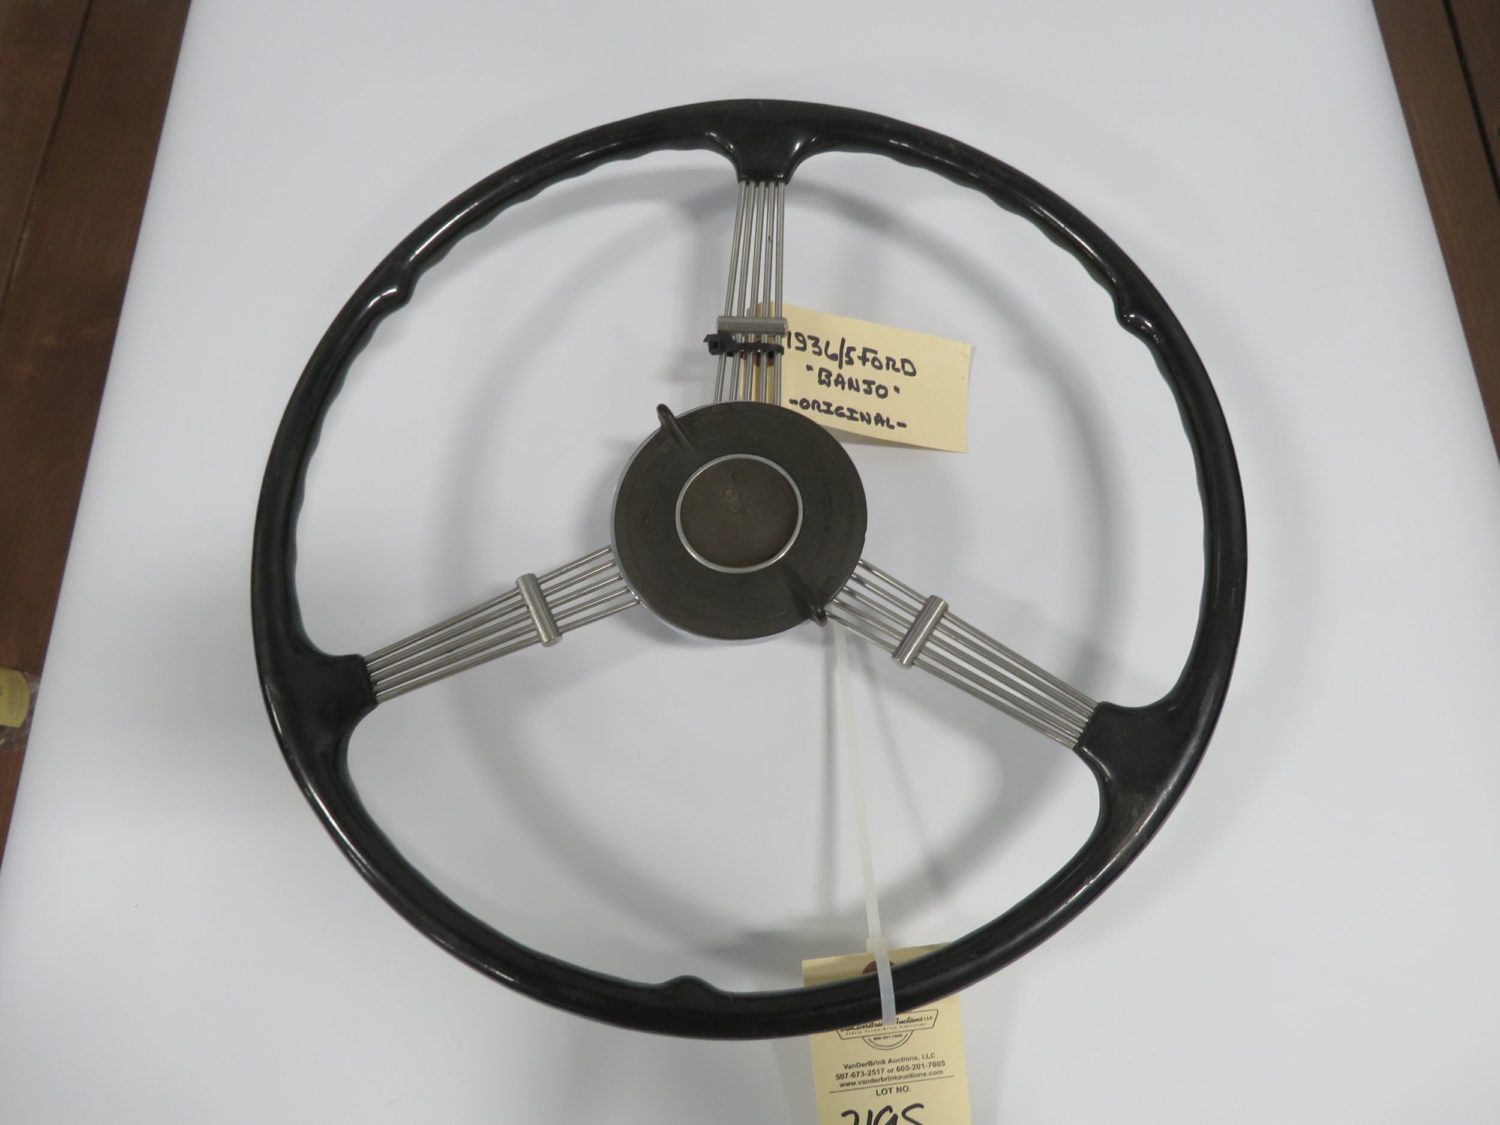 1936 Ford Banjo Steering Wheel/ Horn Button - Image 1